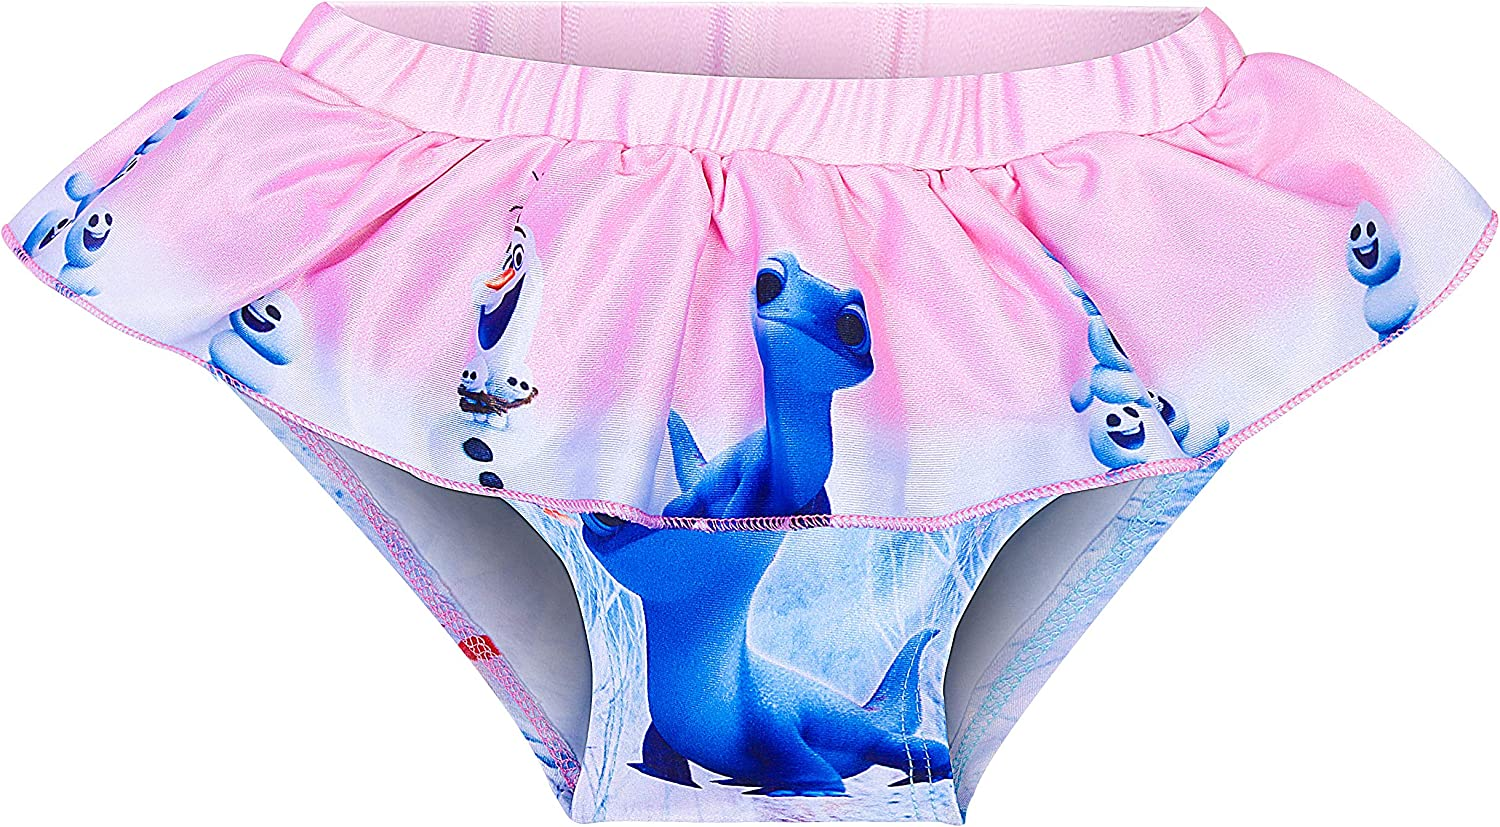 Girls Princess Swimsuit Cute Swimming 2PCS Swimwear Pool Beach Holiday Bathing Suit for Girls Gifts 3-8Y Blue Pink